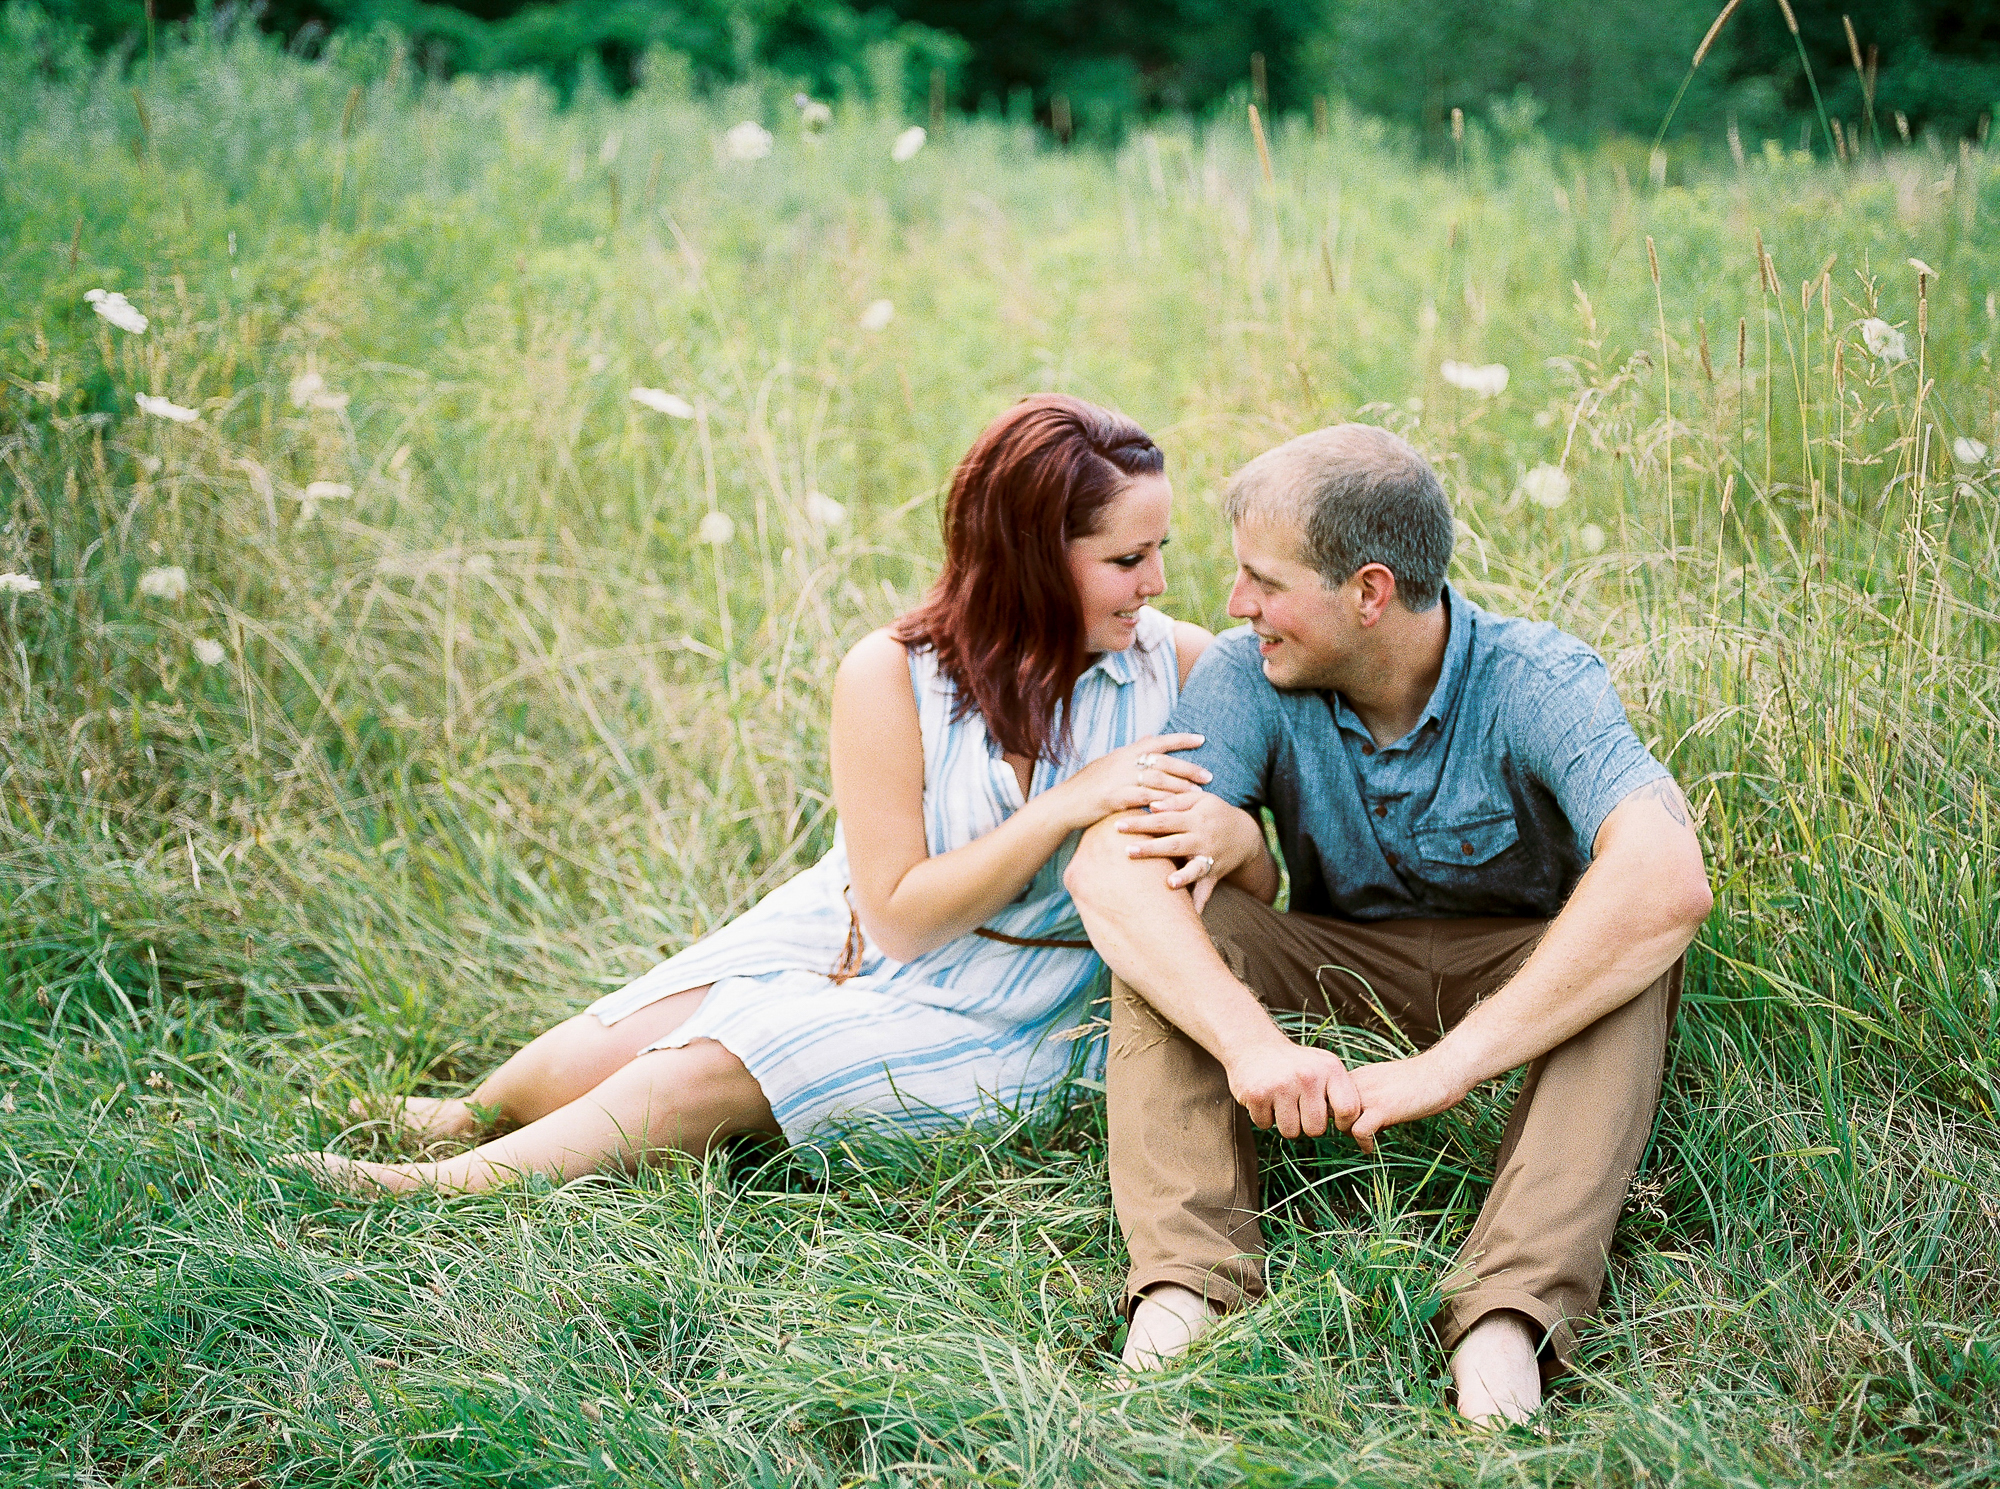 Alexandra-Elise-Photography-Ali-Reed-Film-Farm-Engagement-Session-007